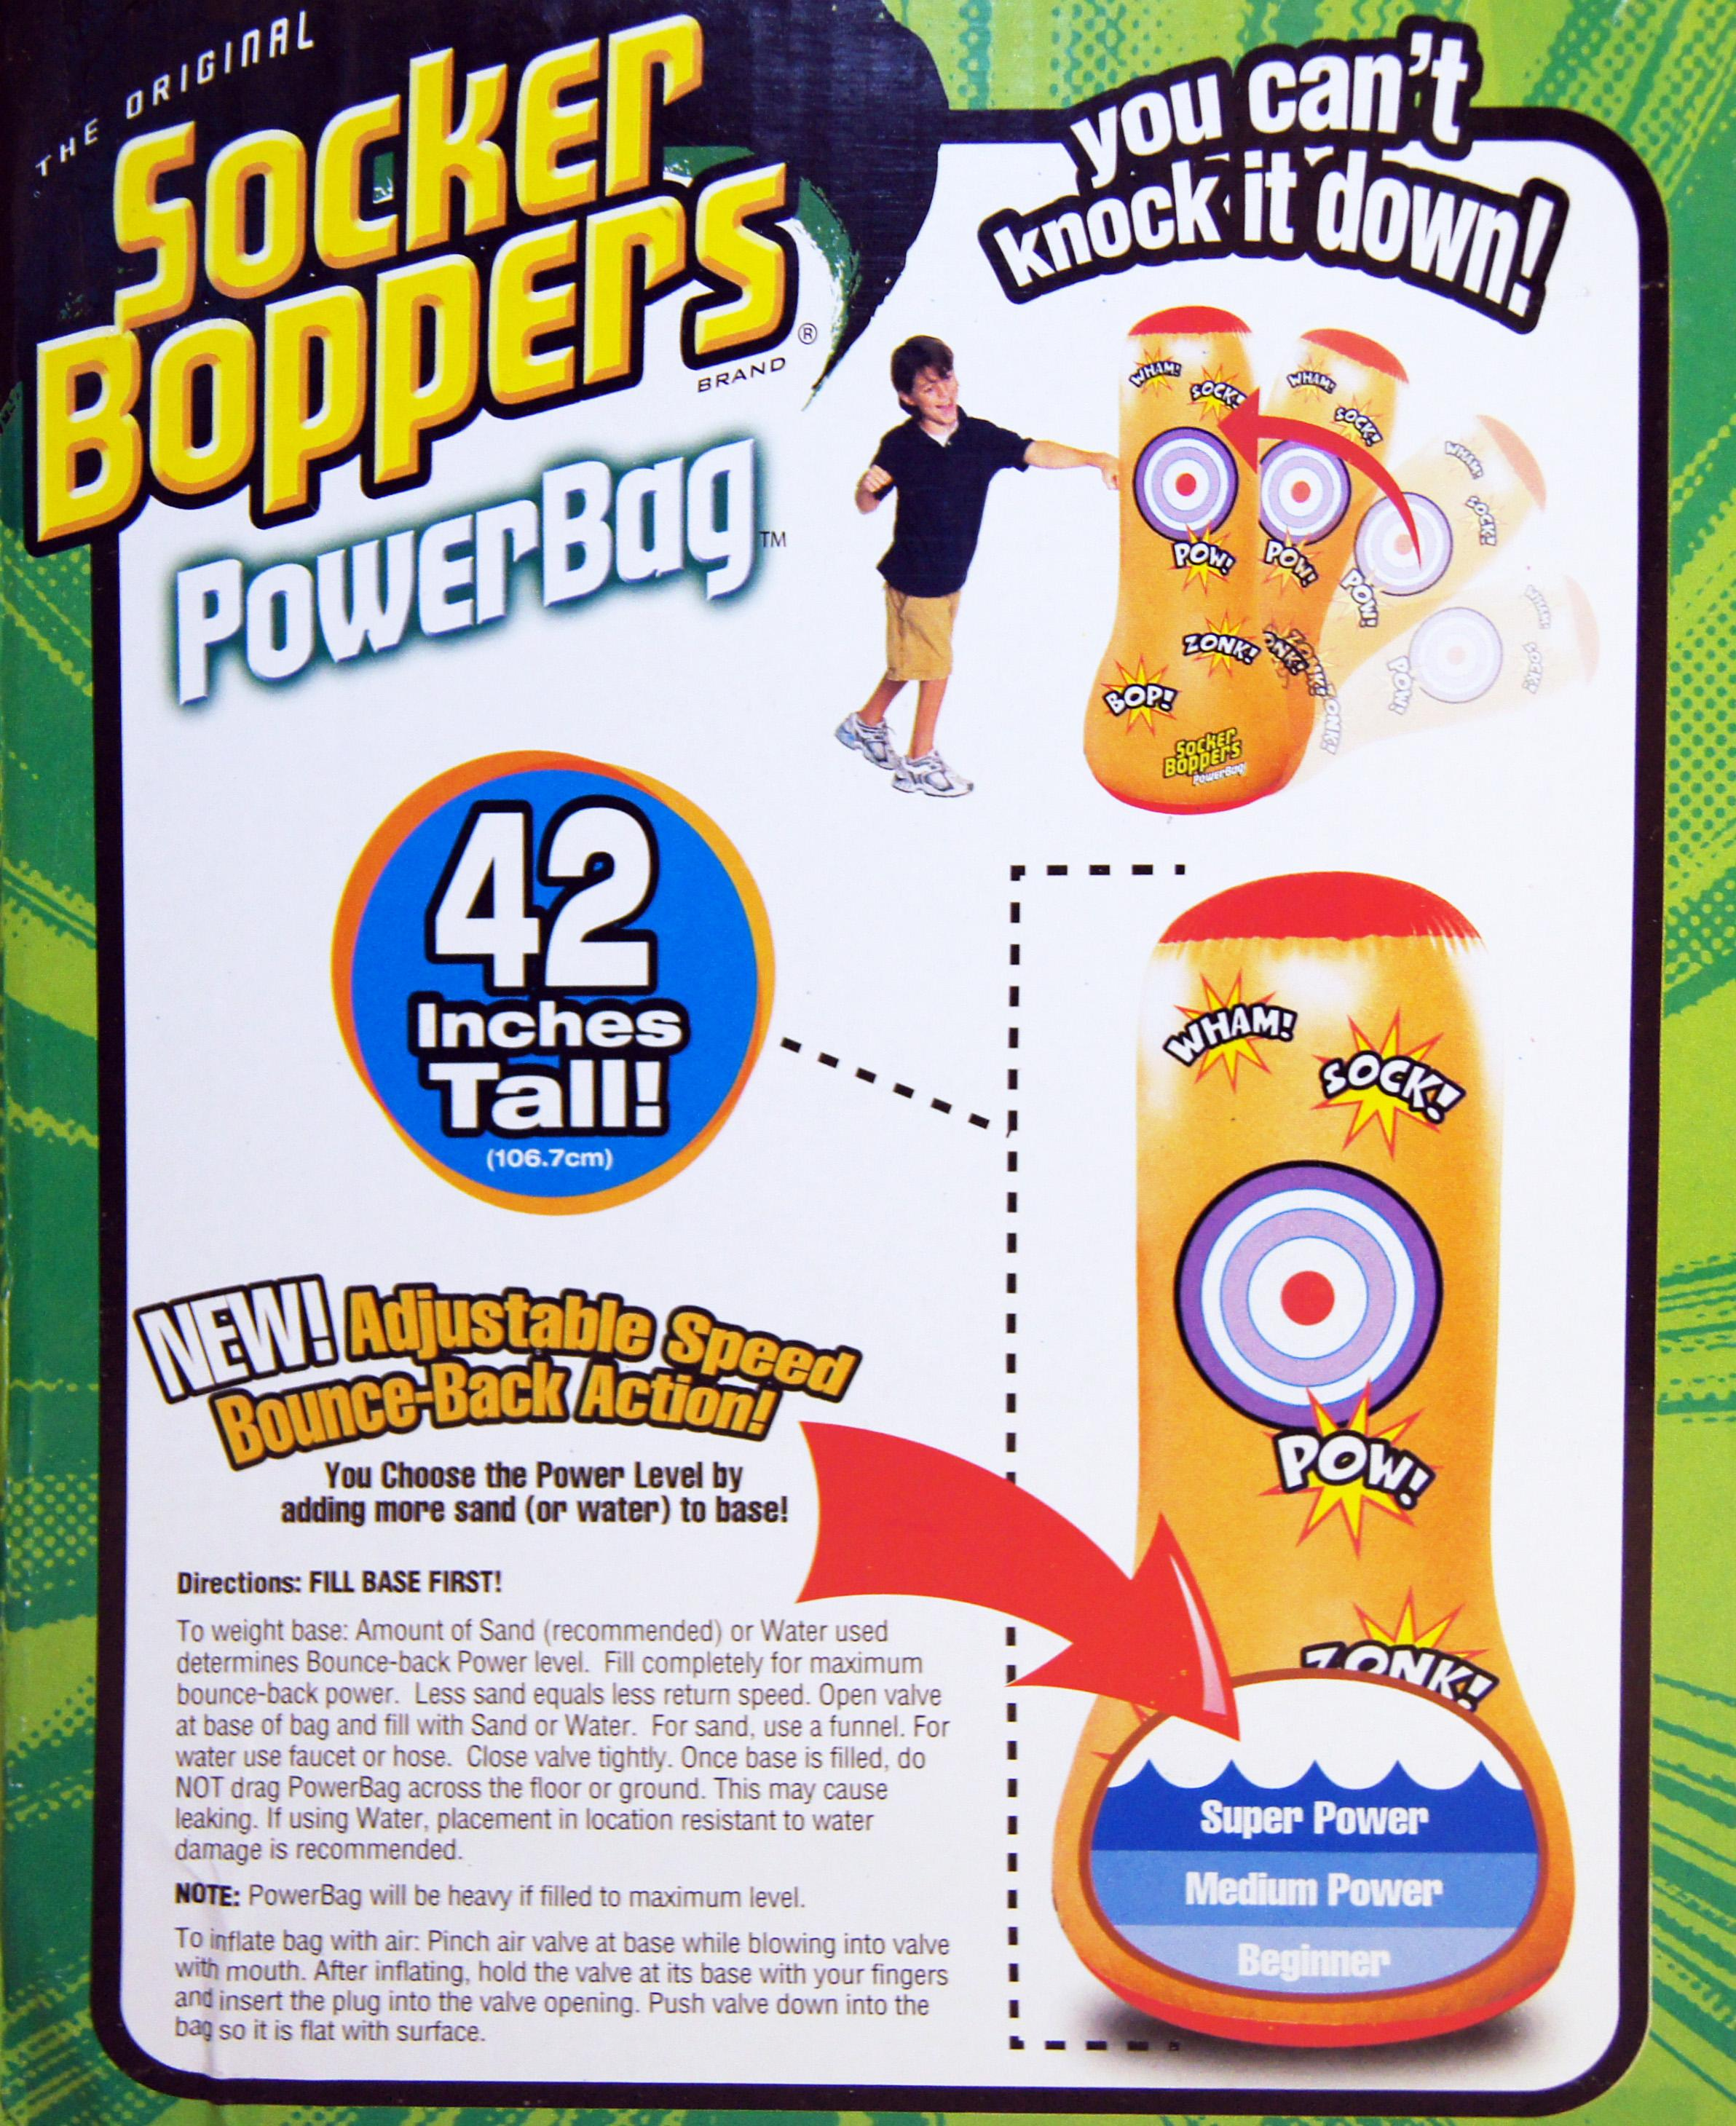 Socker Boppers Power Bag: Big Time Toys Socker Bopper Power Bag: Amazon.ca: Toys & Games